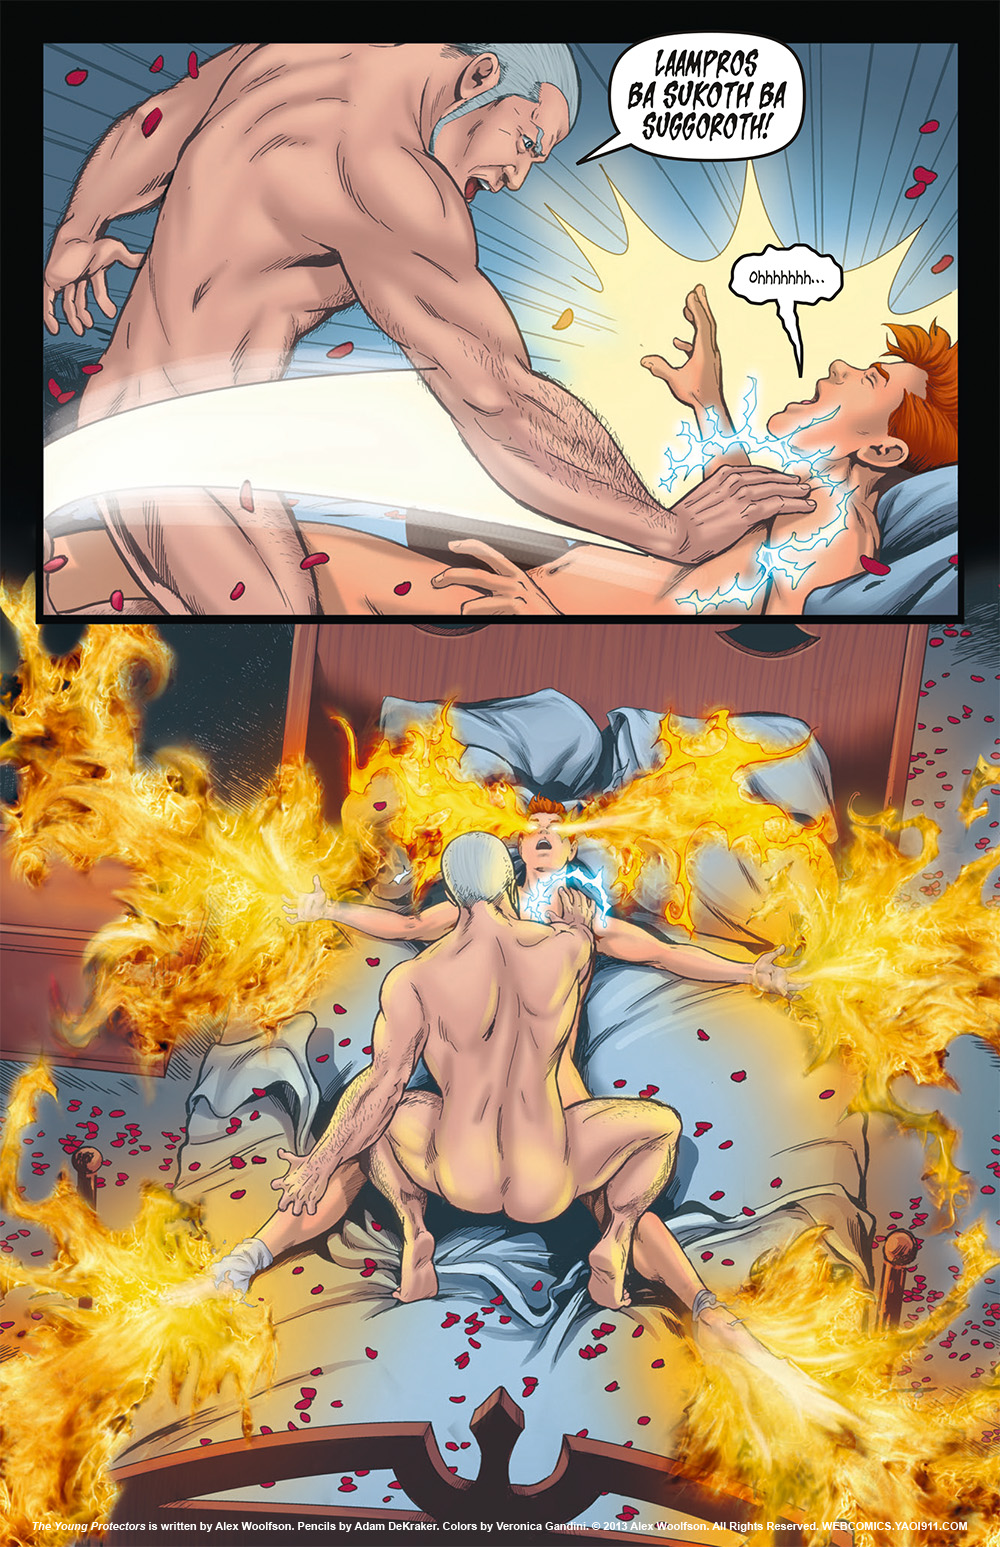 demon gay site web jpg 1152x768